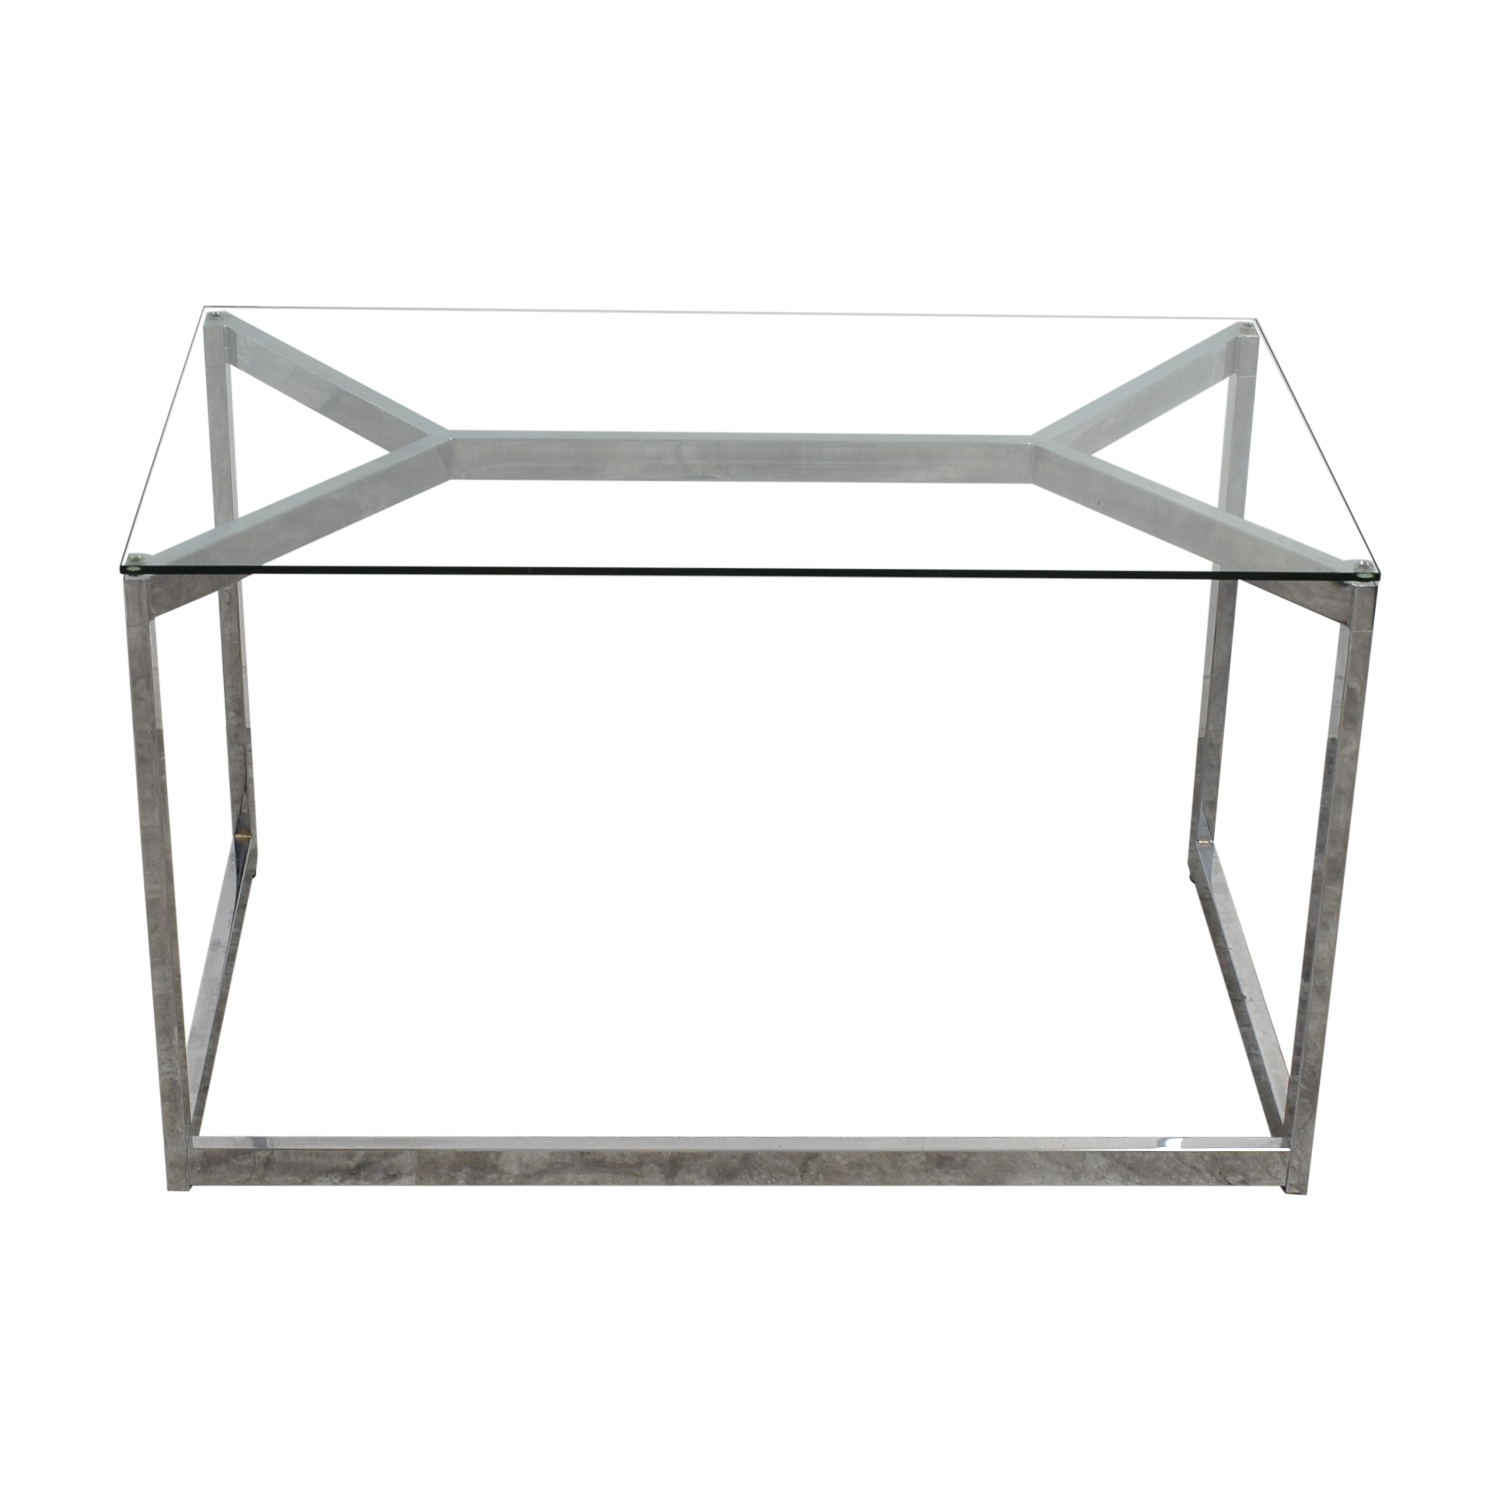 CB2 CB2 Glass and Chrome Office Desk used